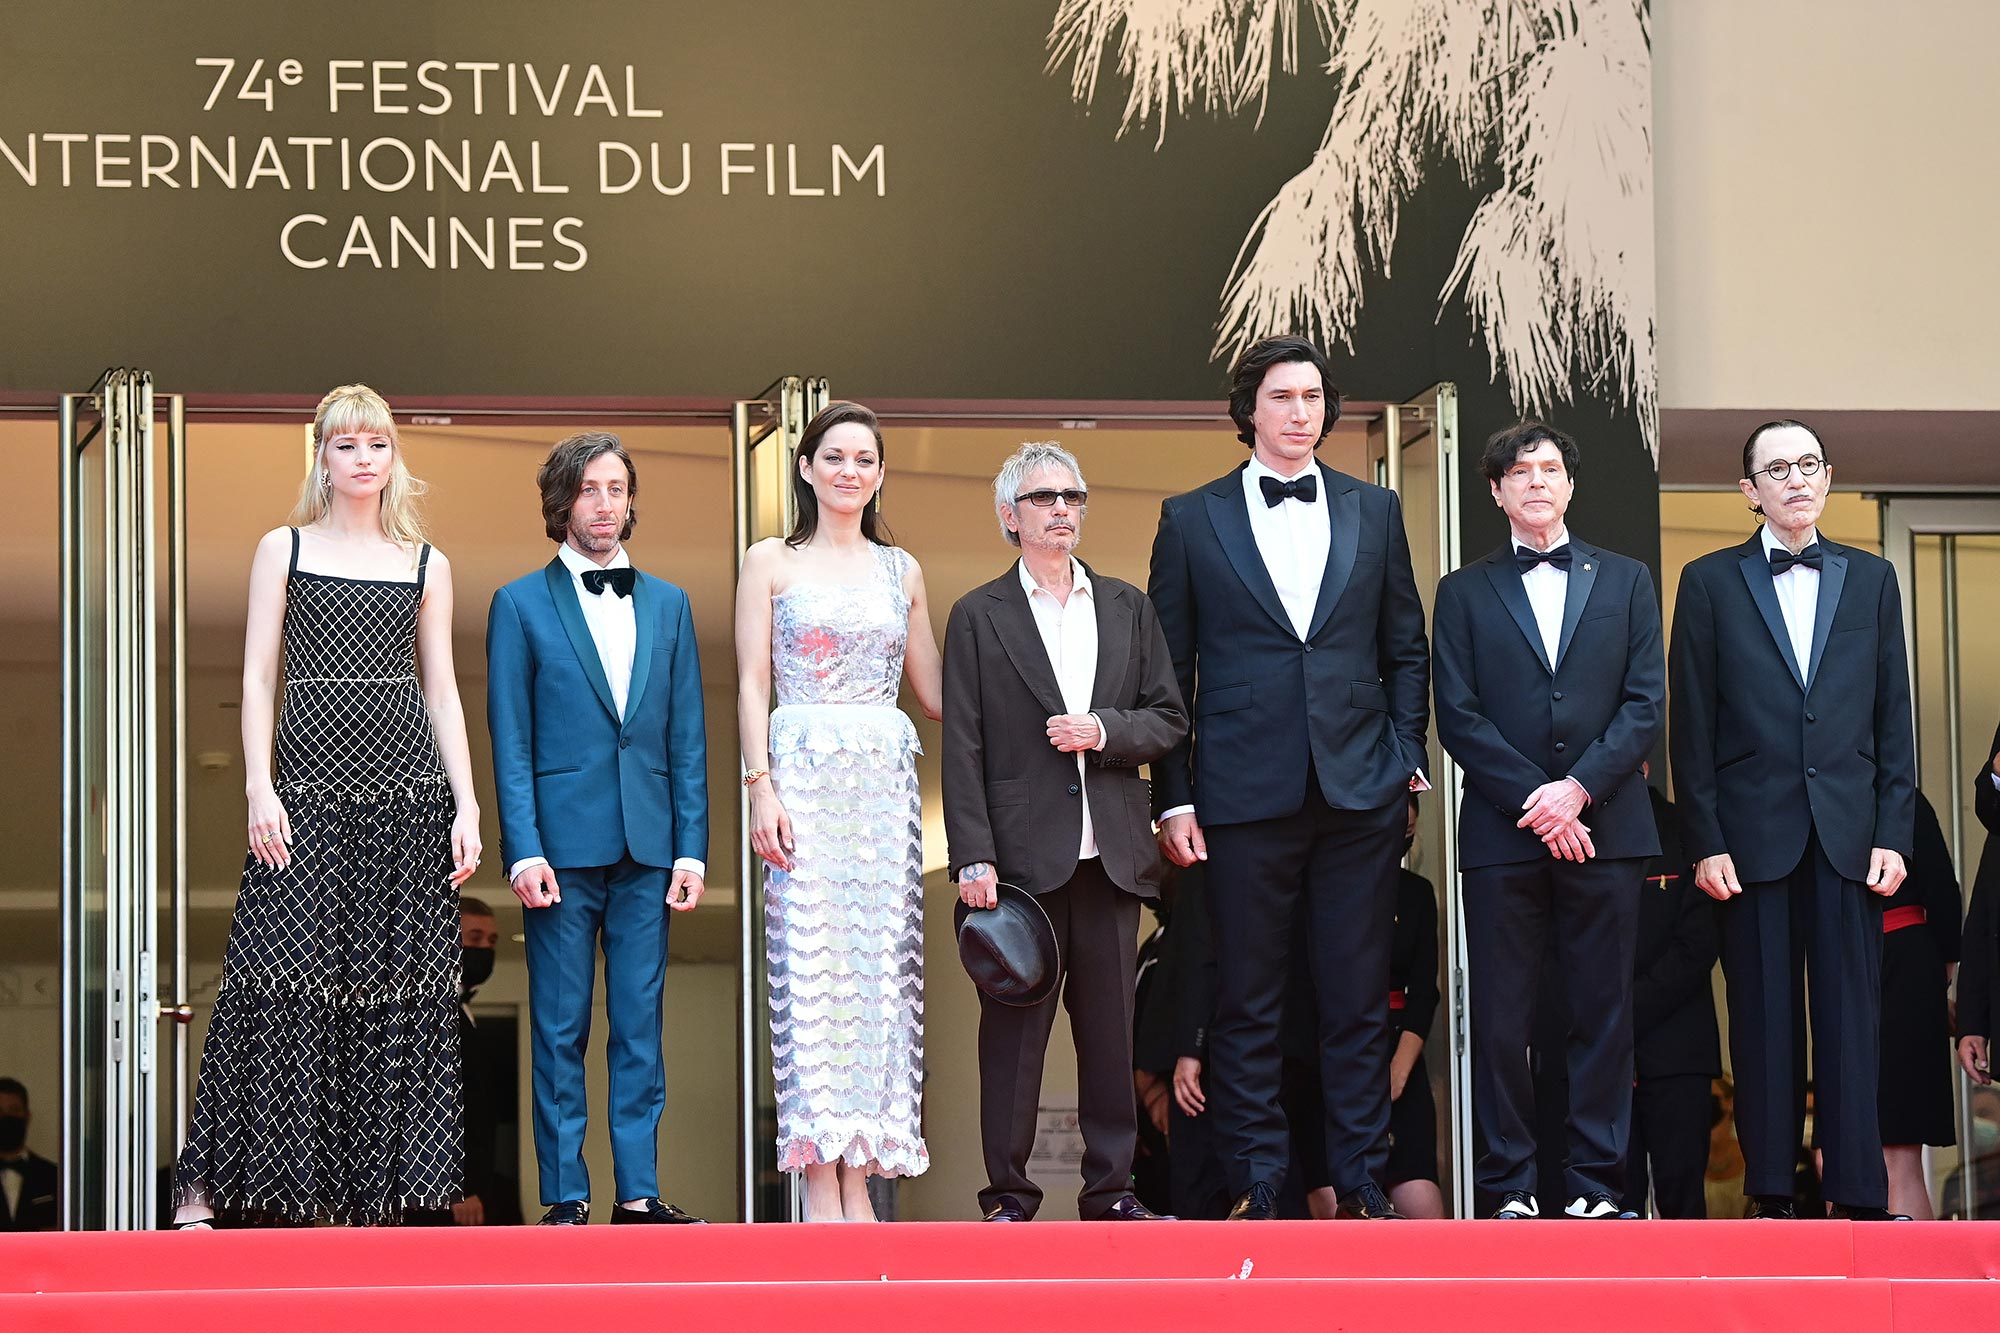 Cannes 2021 Red Carpet Angele, Simon Helberg, Marion Cotillard, director Leos Carax, Adam Driver, Russell Mael and Ron Mael